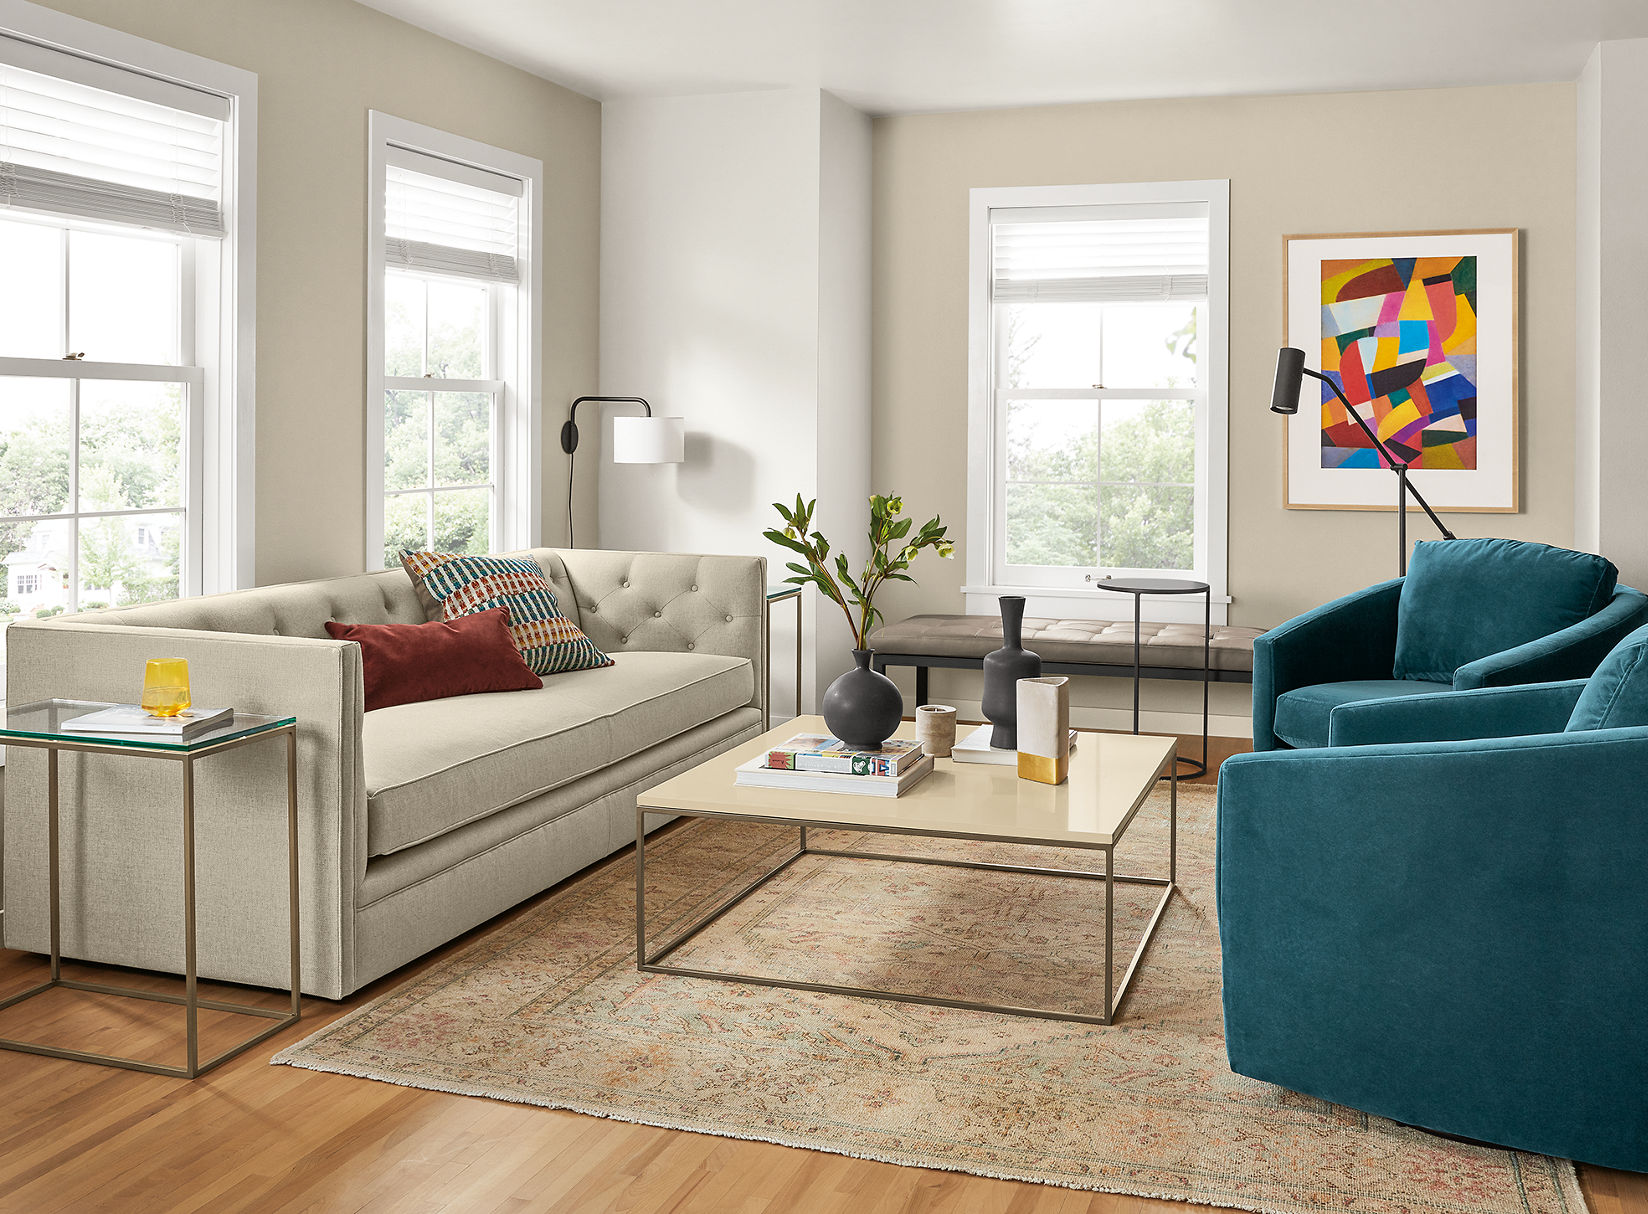 how accent table ideas advice room board macalester behind couch target kindle fire living accents comfy patio furniture pier locations bath and beyond ice cream maker inch wall